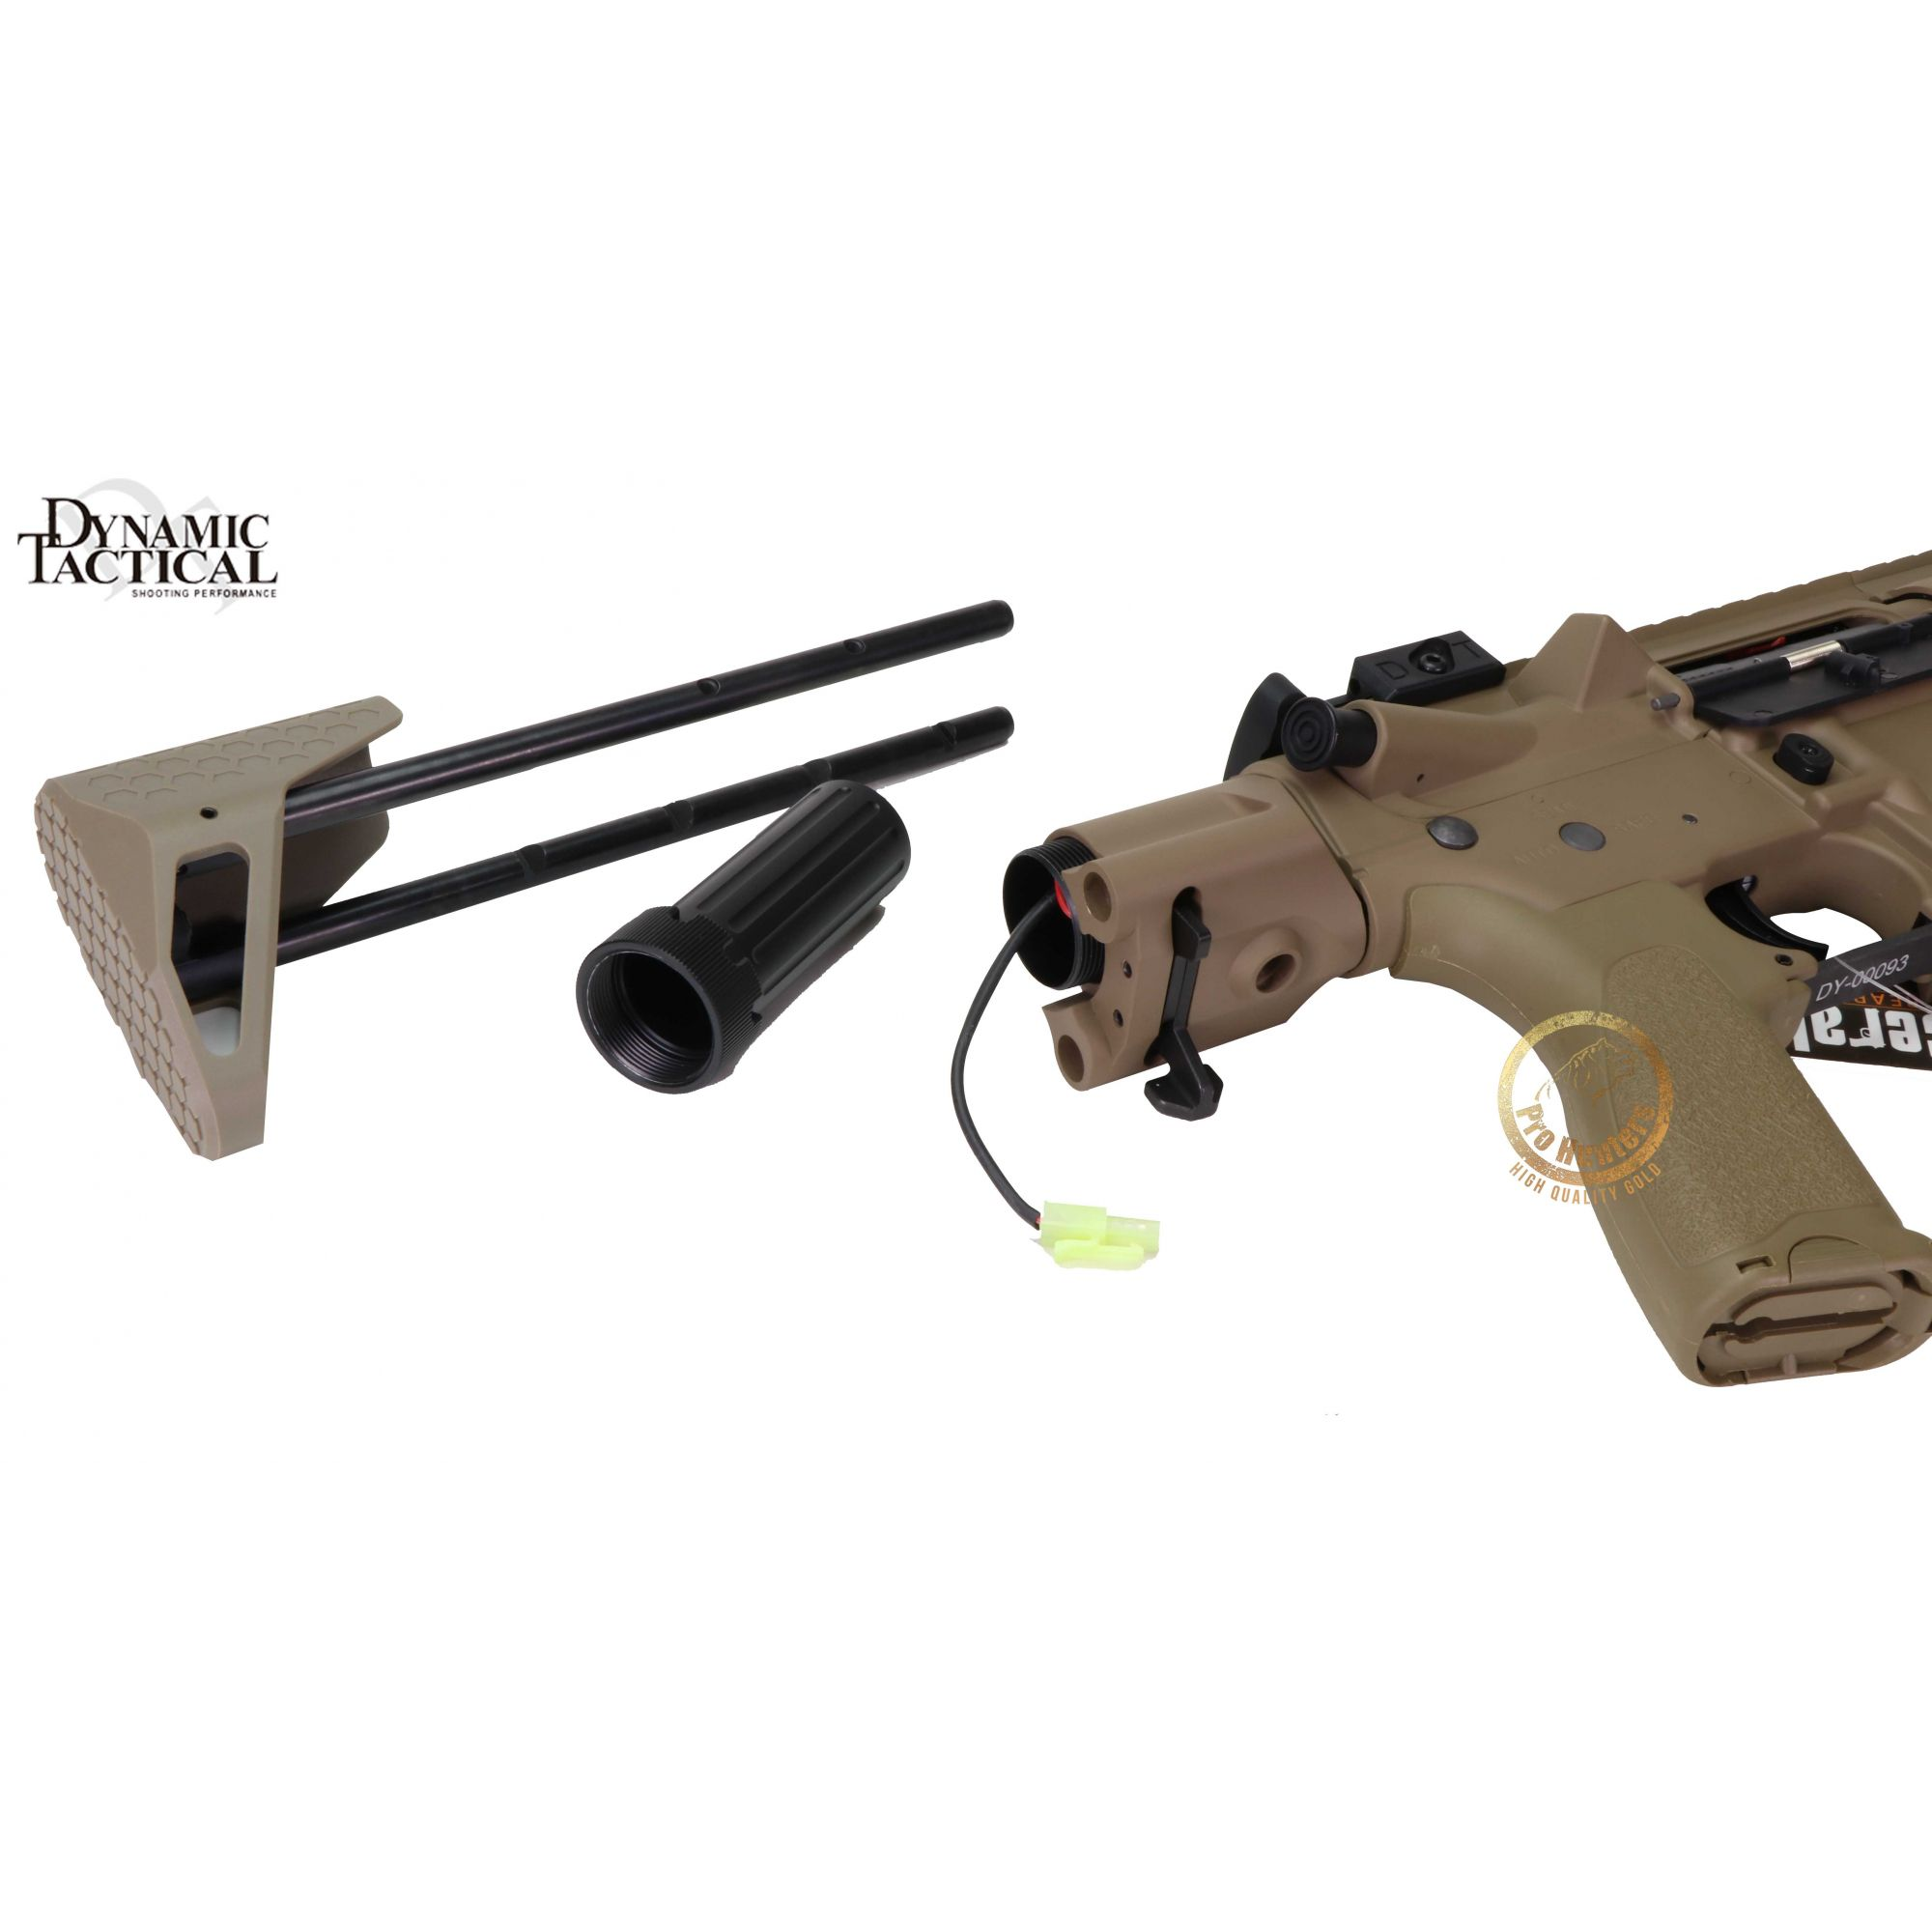 Rifle Airsoft Dytac EVO Standard M4 SBR Type A - Magpul Dark Earth